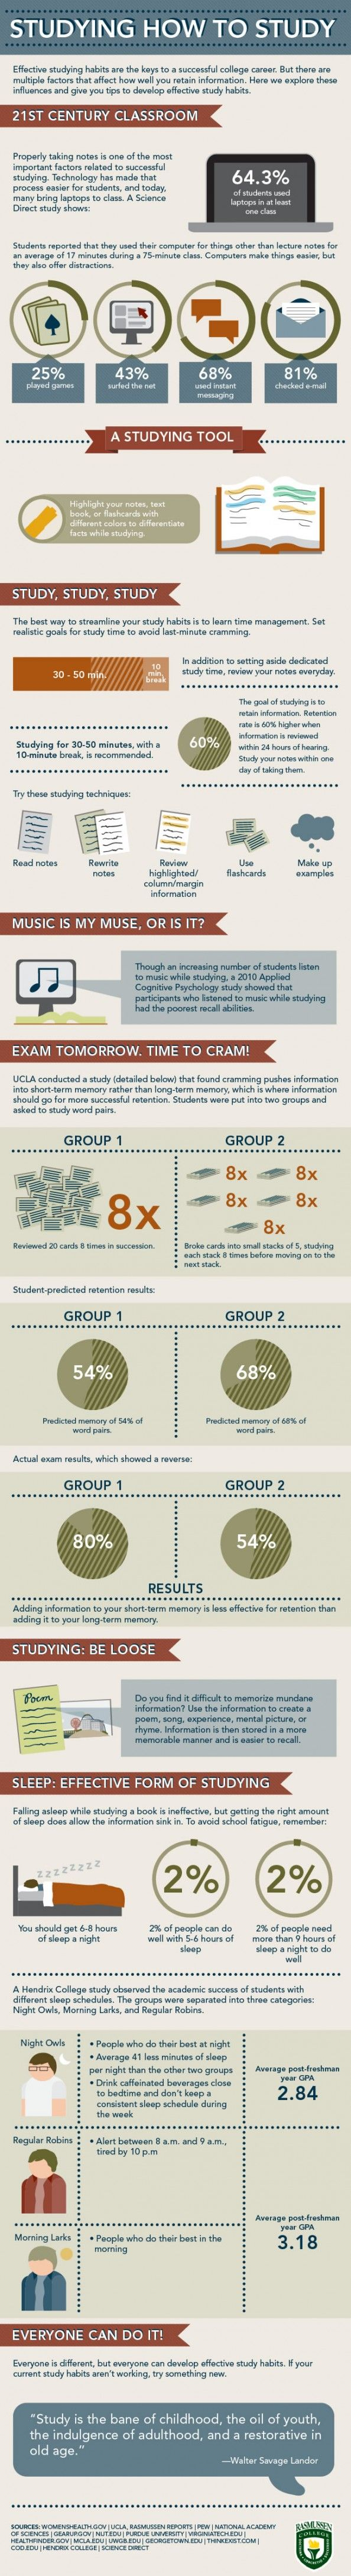 Studying How To Study Infographic